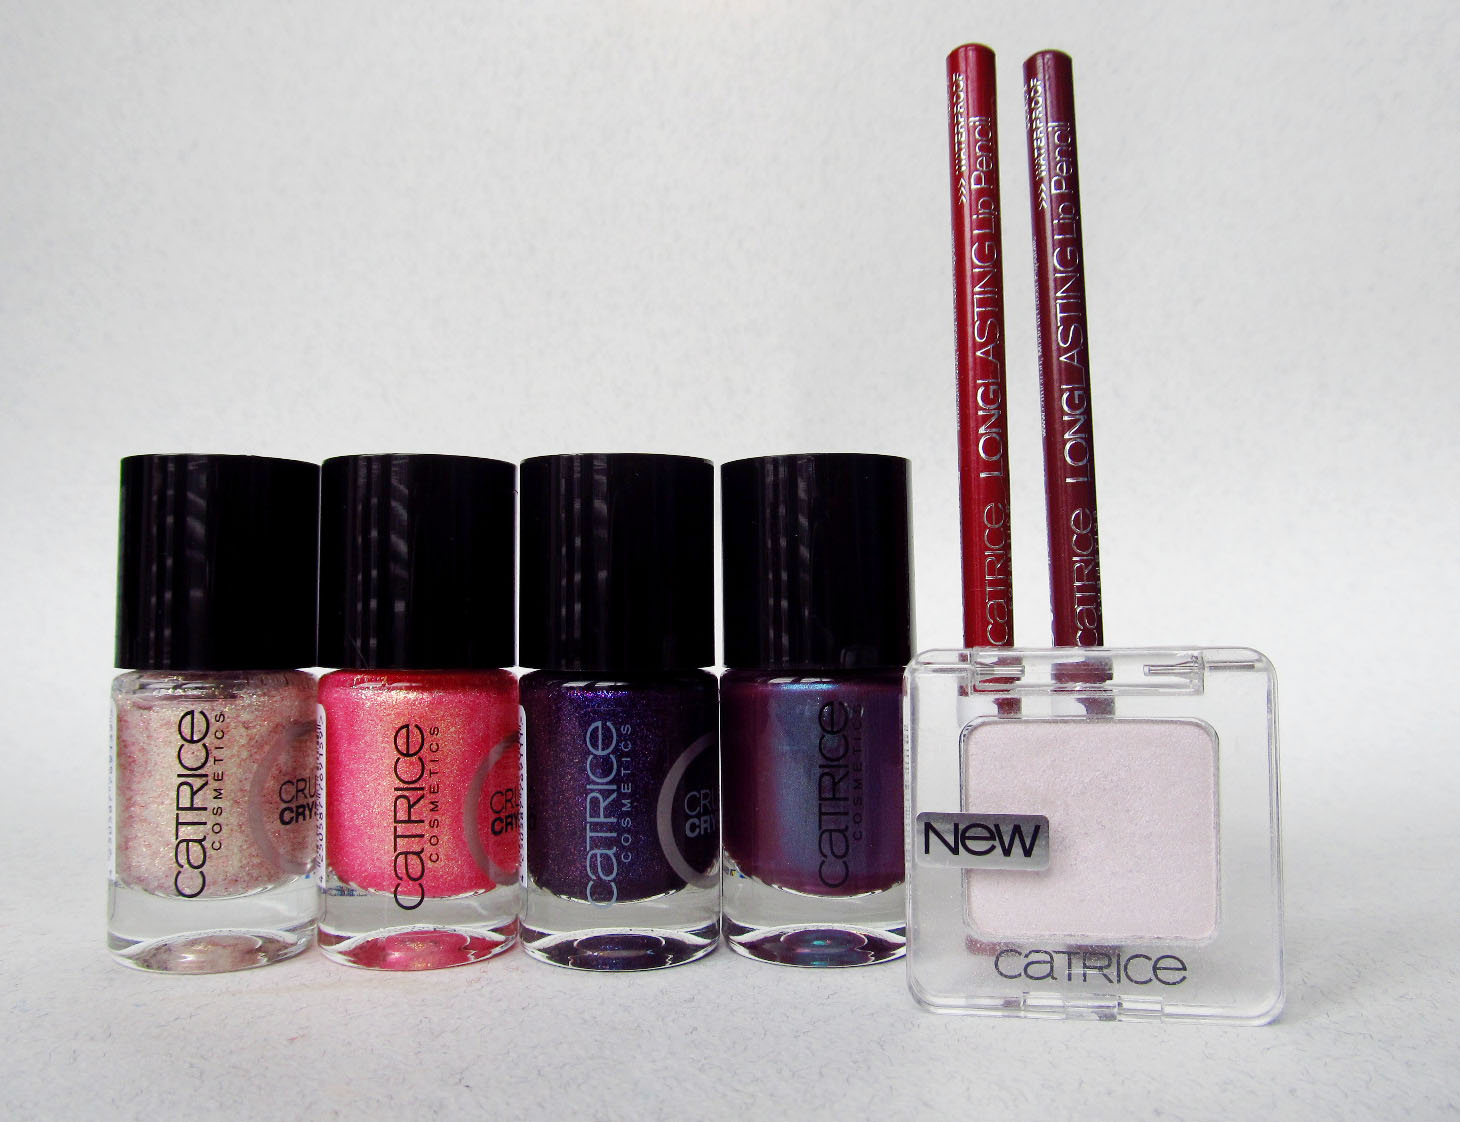 Passing Fancy Catrice New Products Spring 2014 Haul Swatches